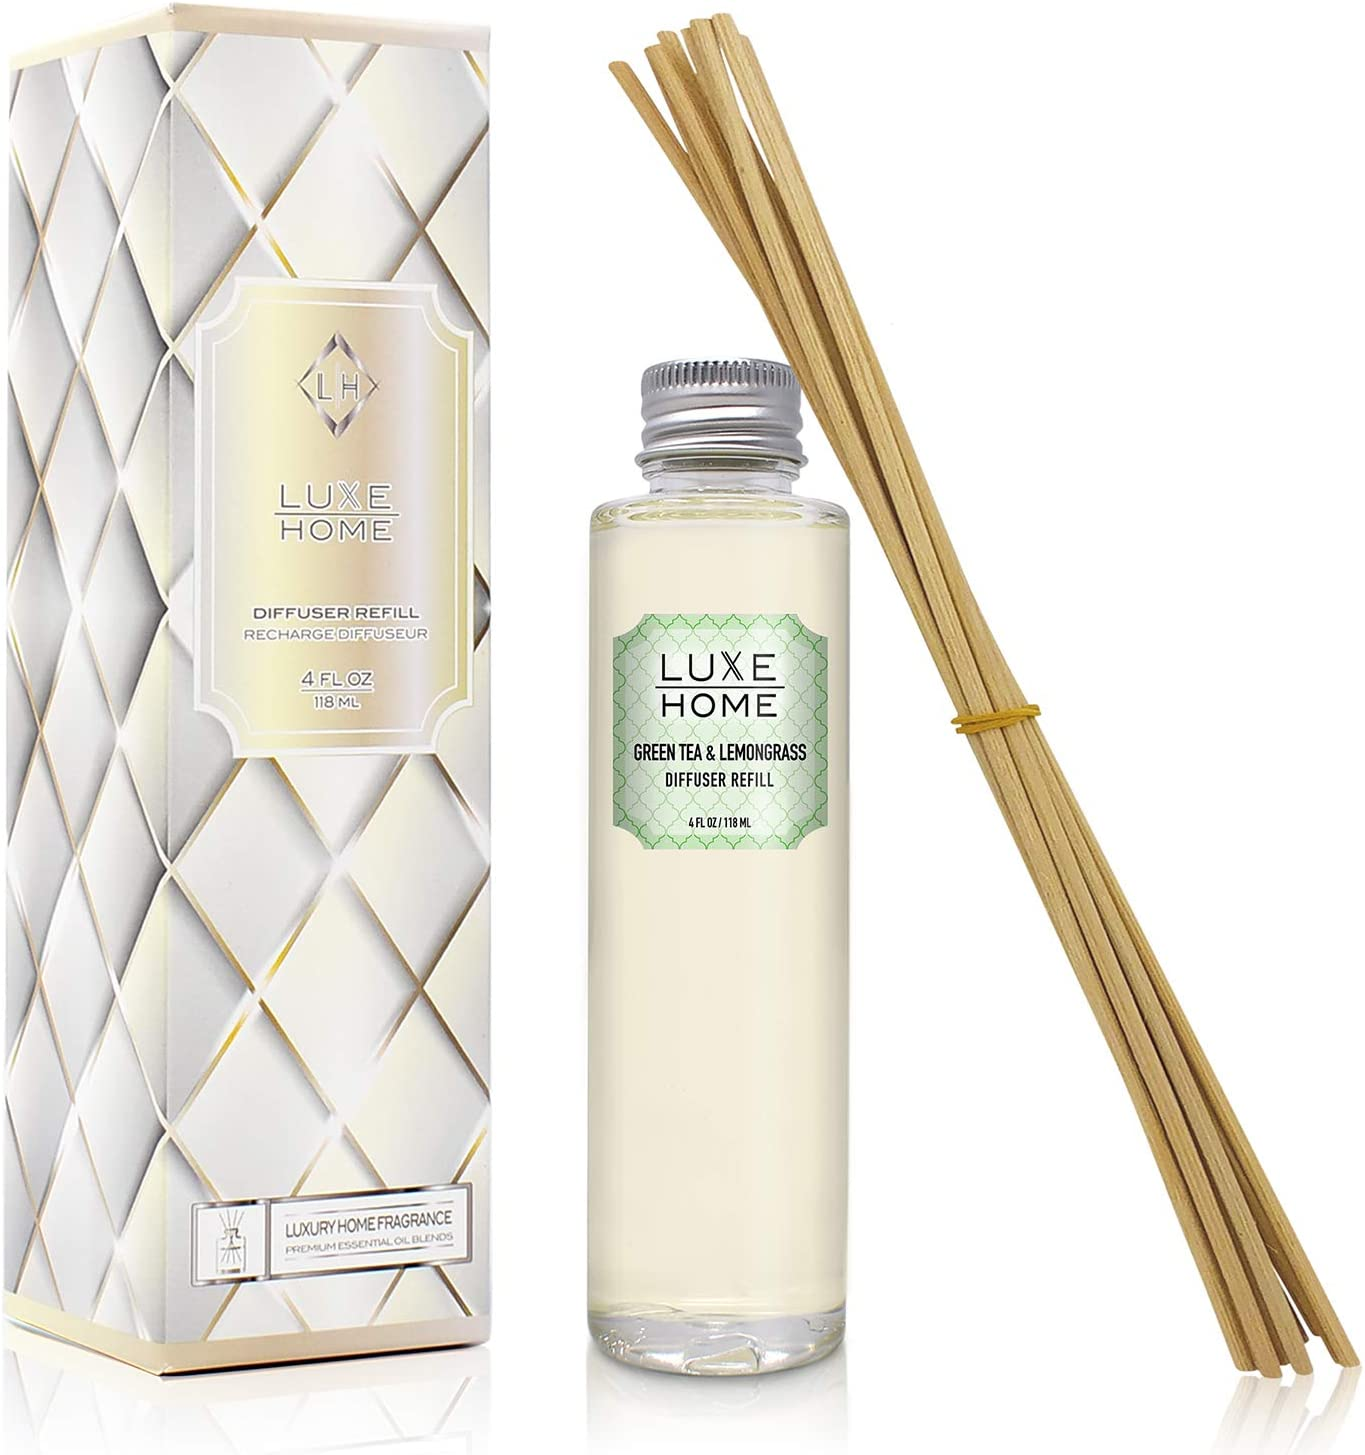 Luxe Home Green Tea & Lemongrass Reed Diffuser Refill Oil with Sticks   Scent Notes of Valencia Oranges, Lemongrass and Fresh-Cut Greens   Scented Replacement Oil for Room Diffuser